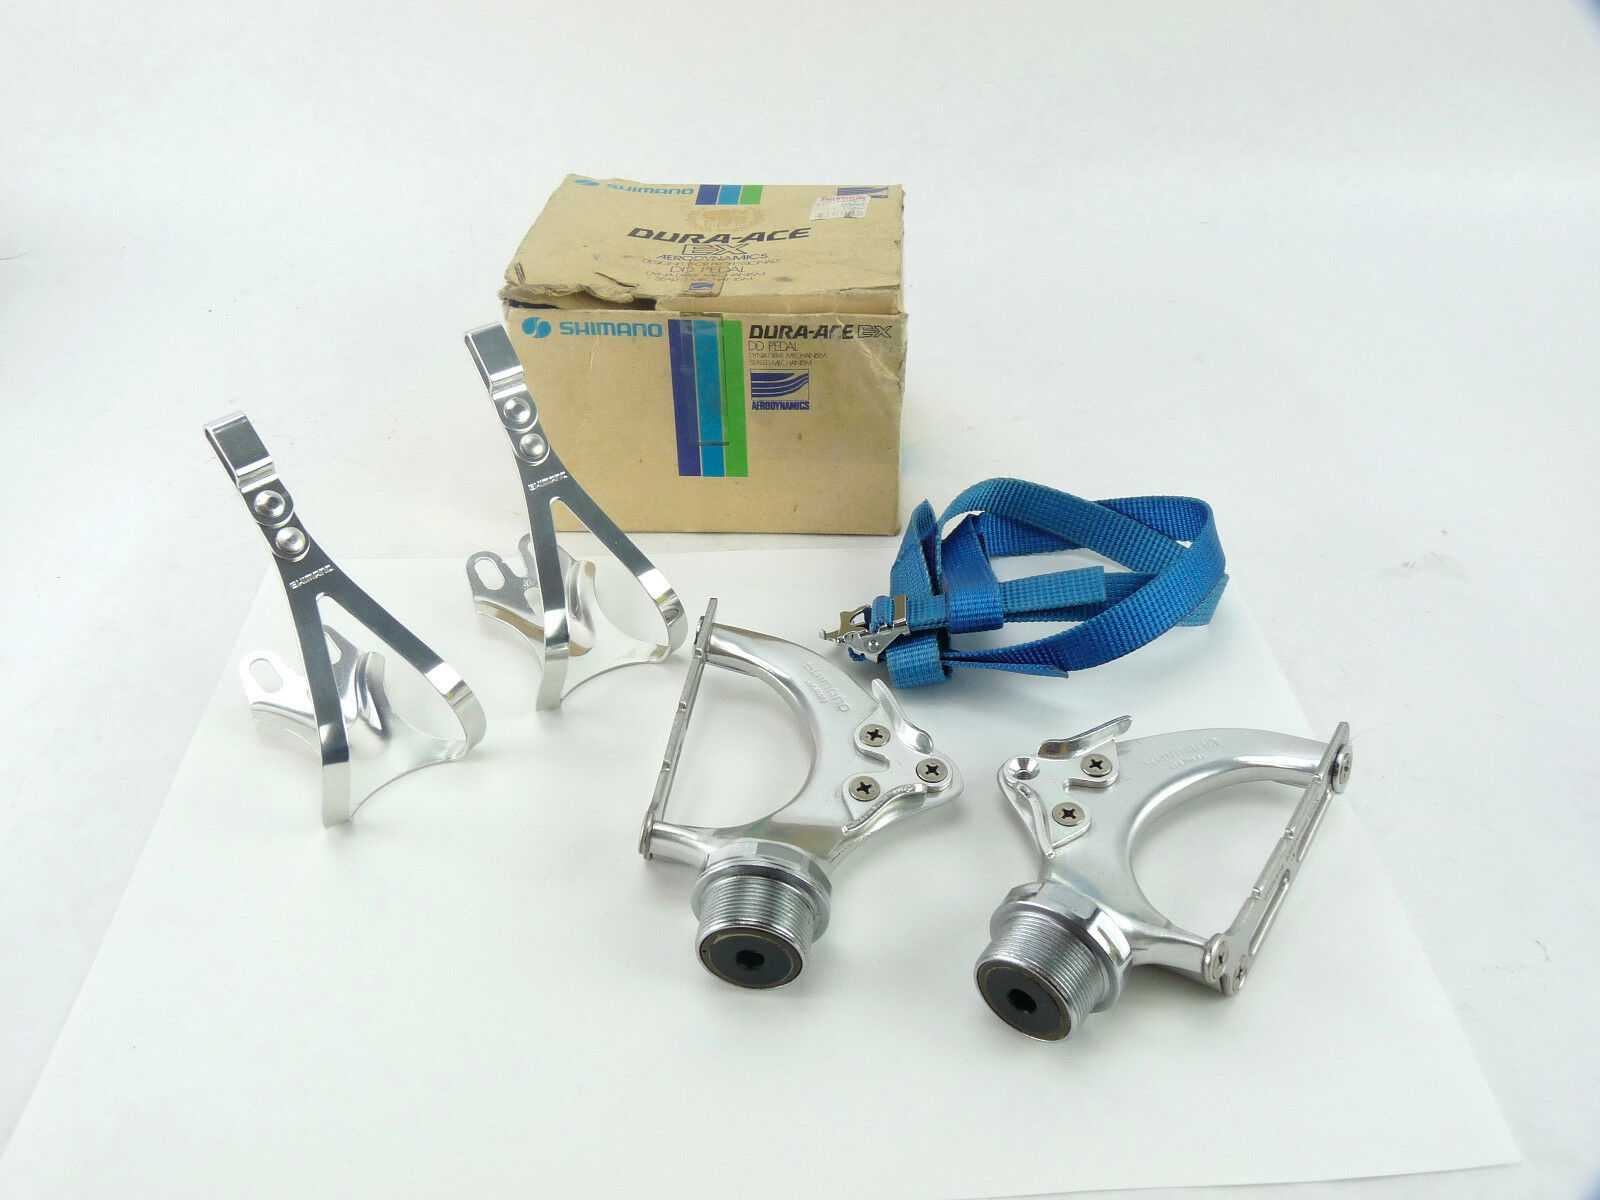 Dura Ace Pedals AX Shimano Dynadrive w toe Clips & Straps Vintage Bicycle NOS